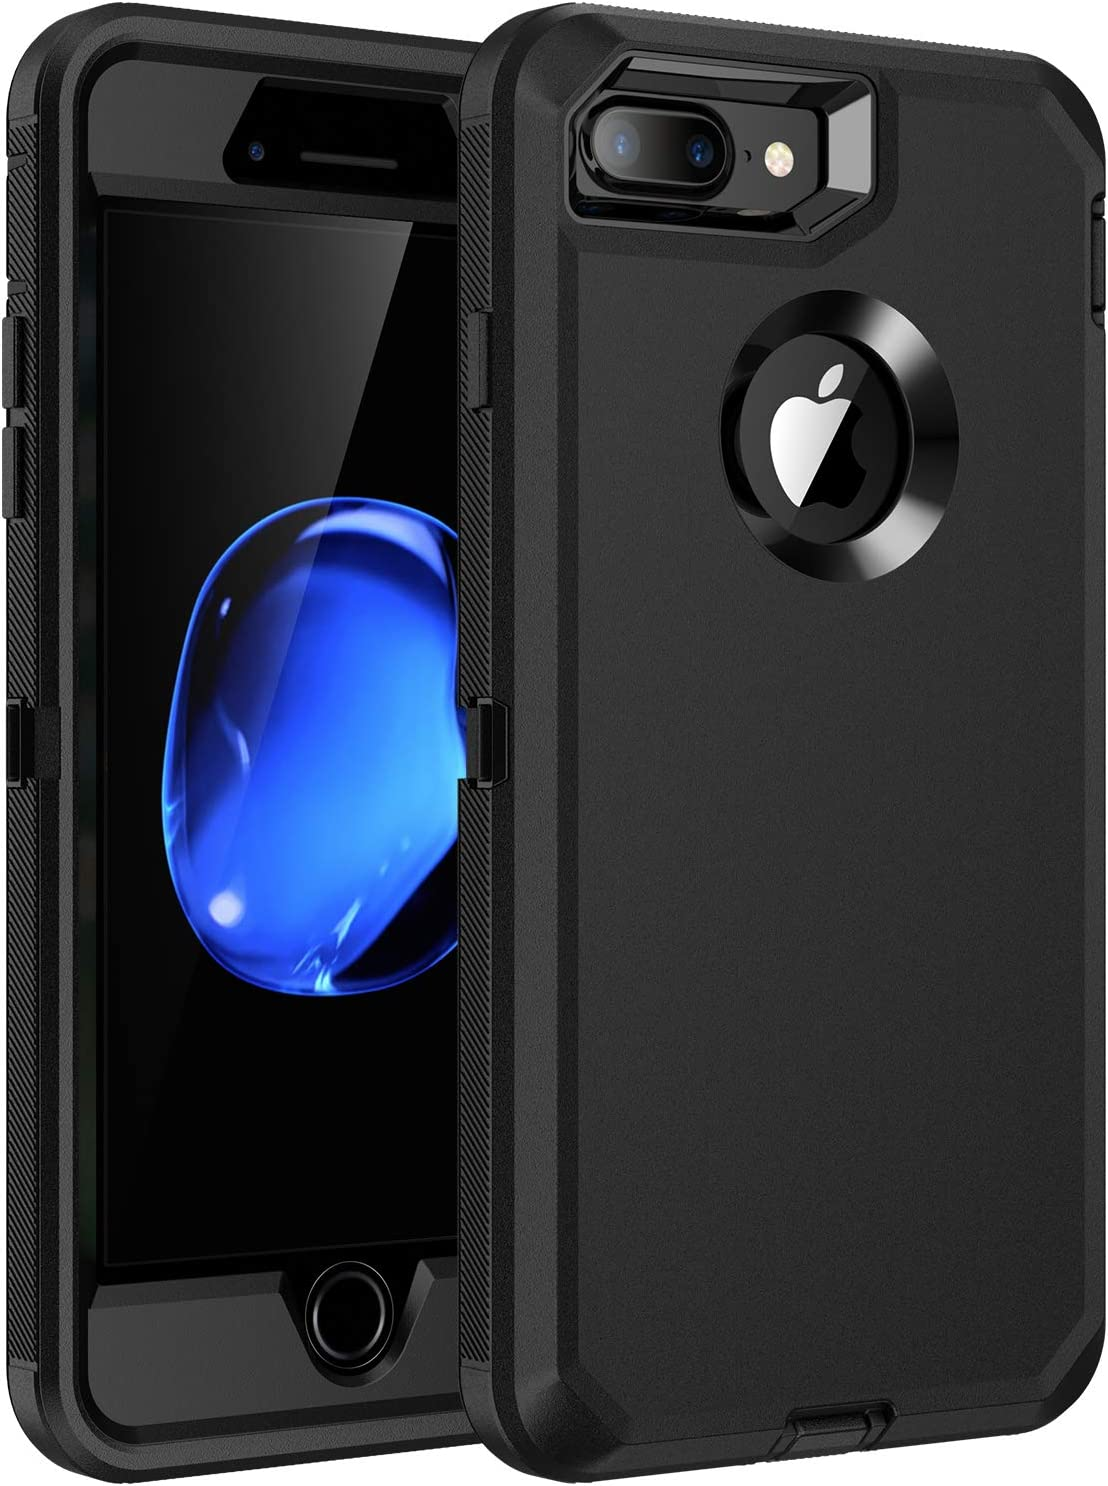 RegSun for iPhone 8 Plus,iPhone 7 Plus Case,Built-in Screen Protector, Shockproof 3-Layer Full Body Protection Rugged Heavy Duty High Impact Hard Cover Case for iPhone 8+/7+ 5.5 inch,Black